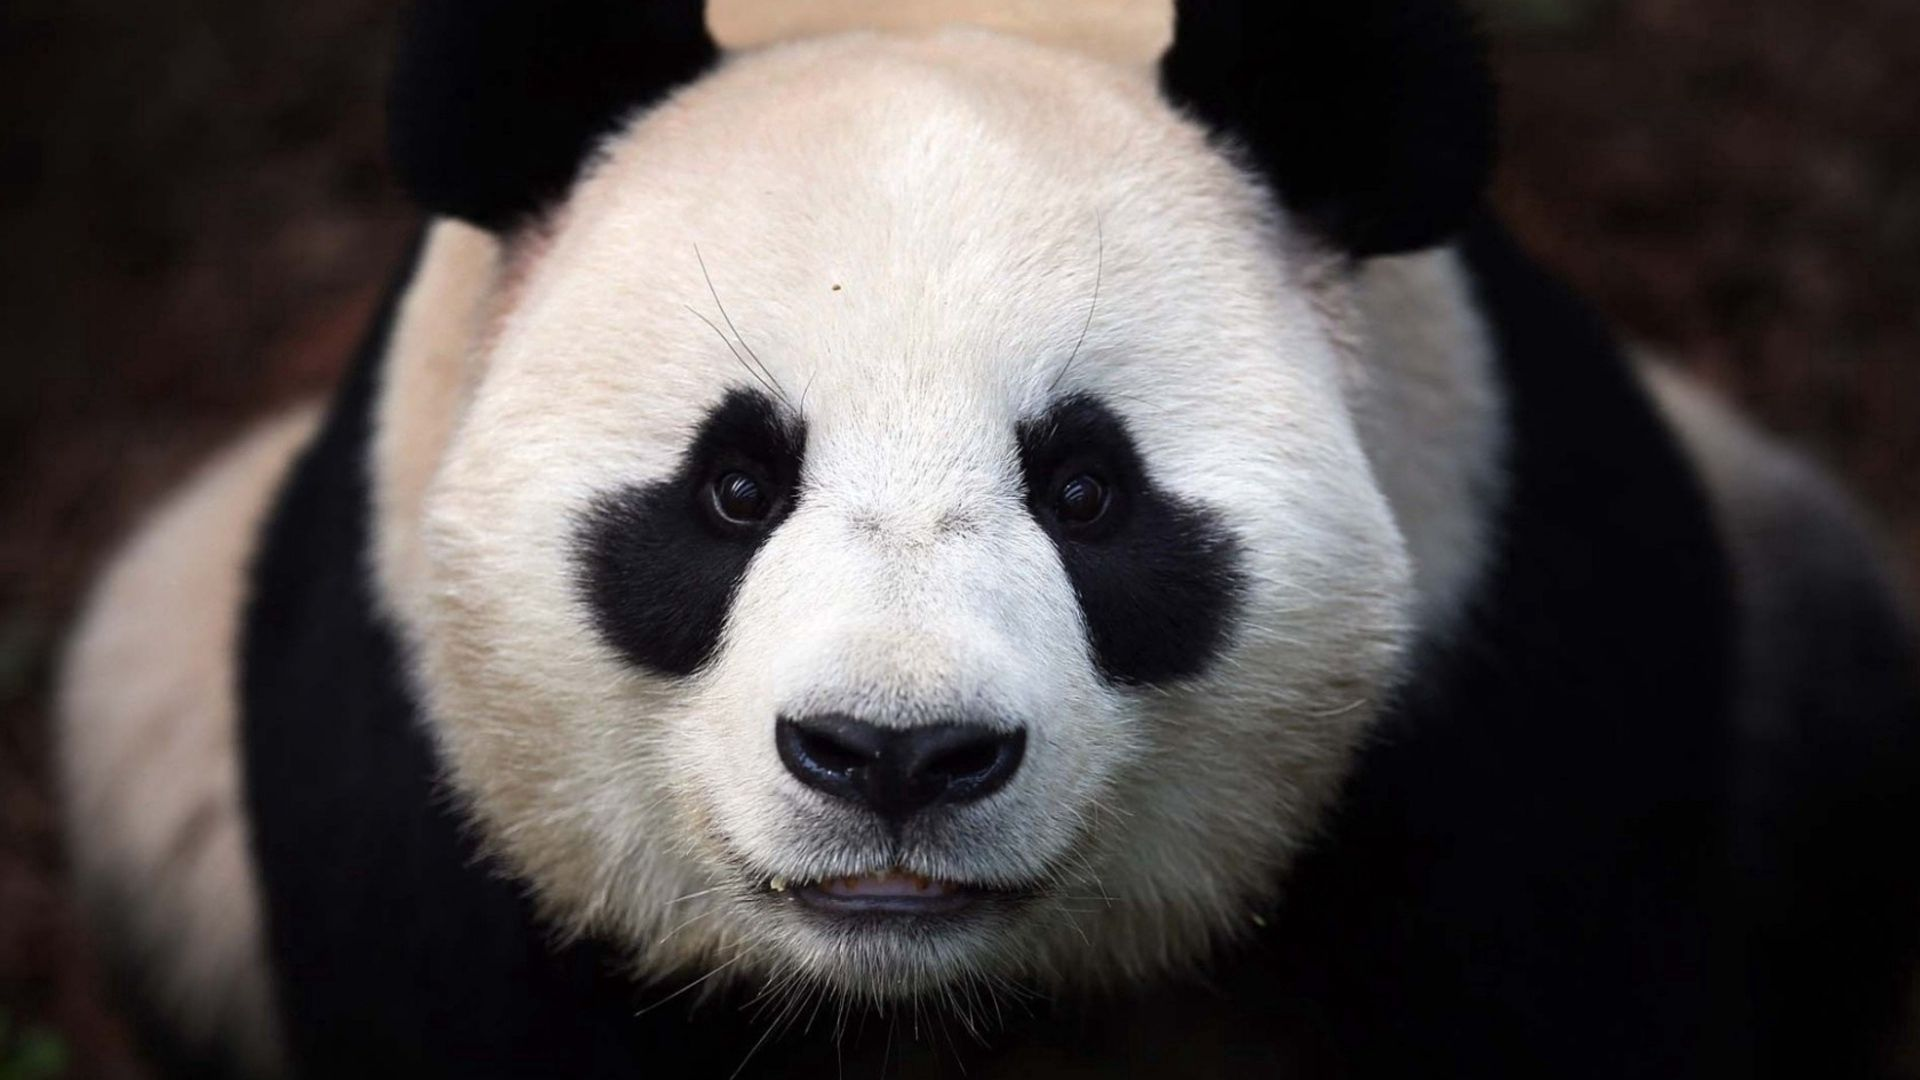 78986 download wallpaper Animals, Bear, Panda, Muzzle screensavers and pictures for free